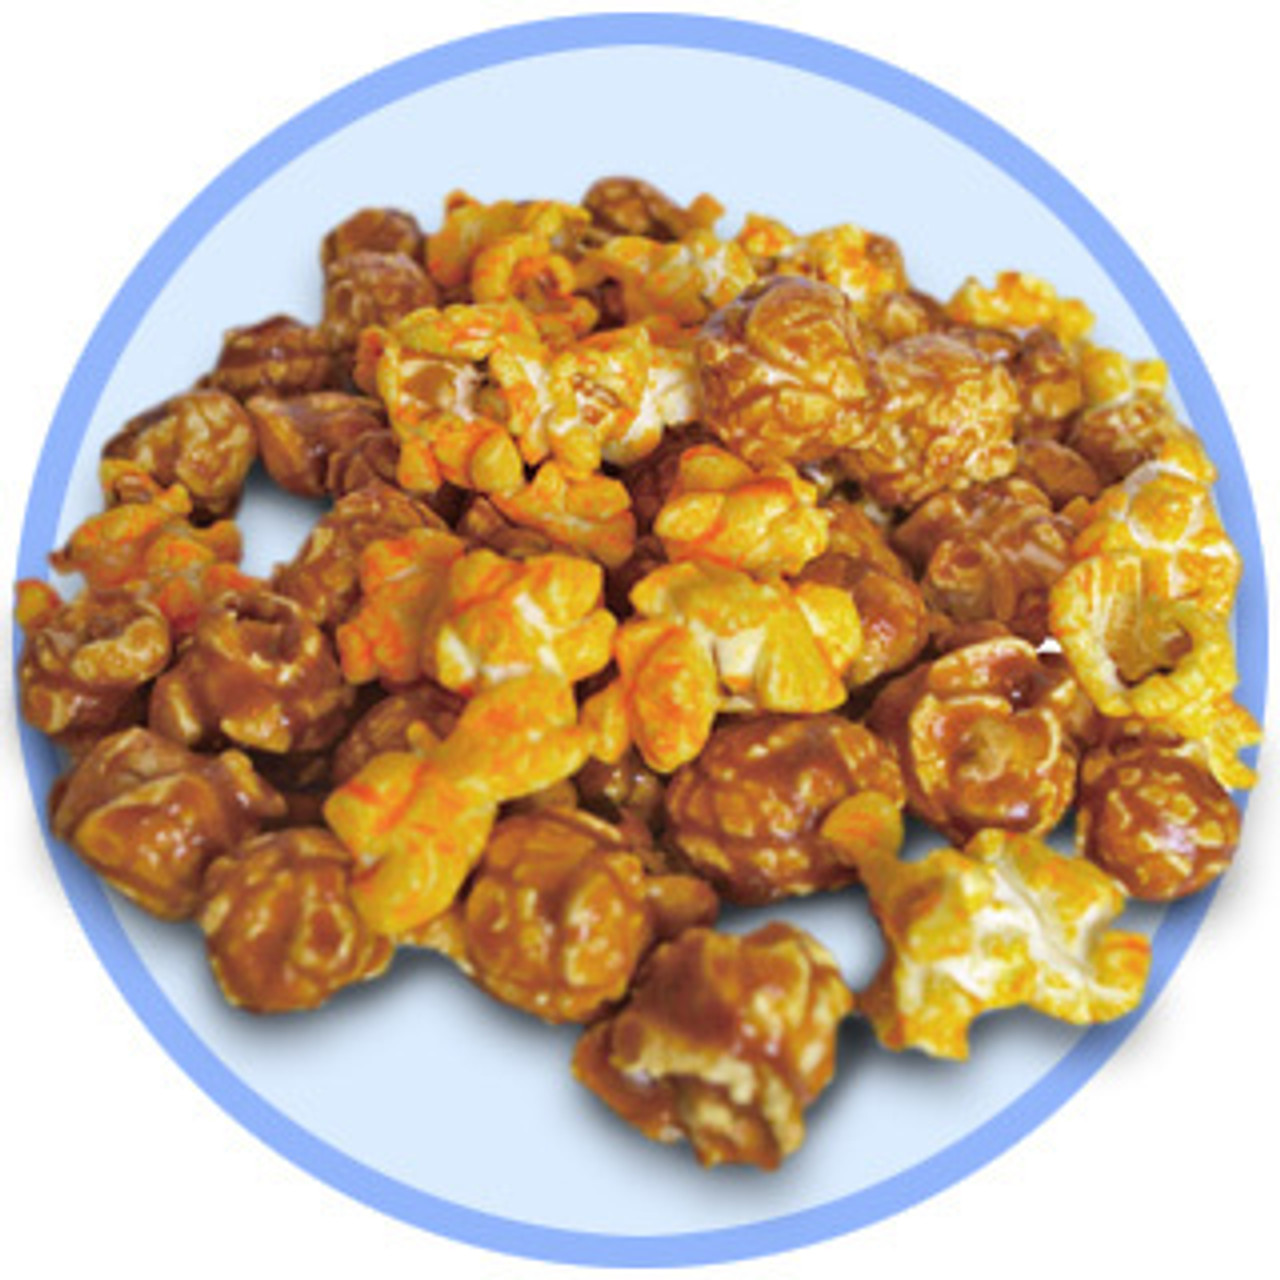 Cheese & Caramel Mix Popcorn